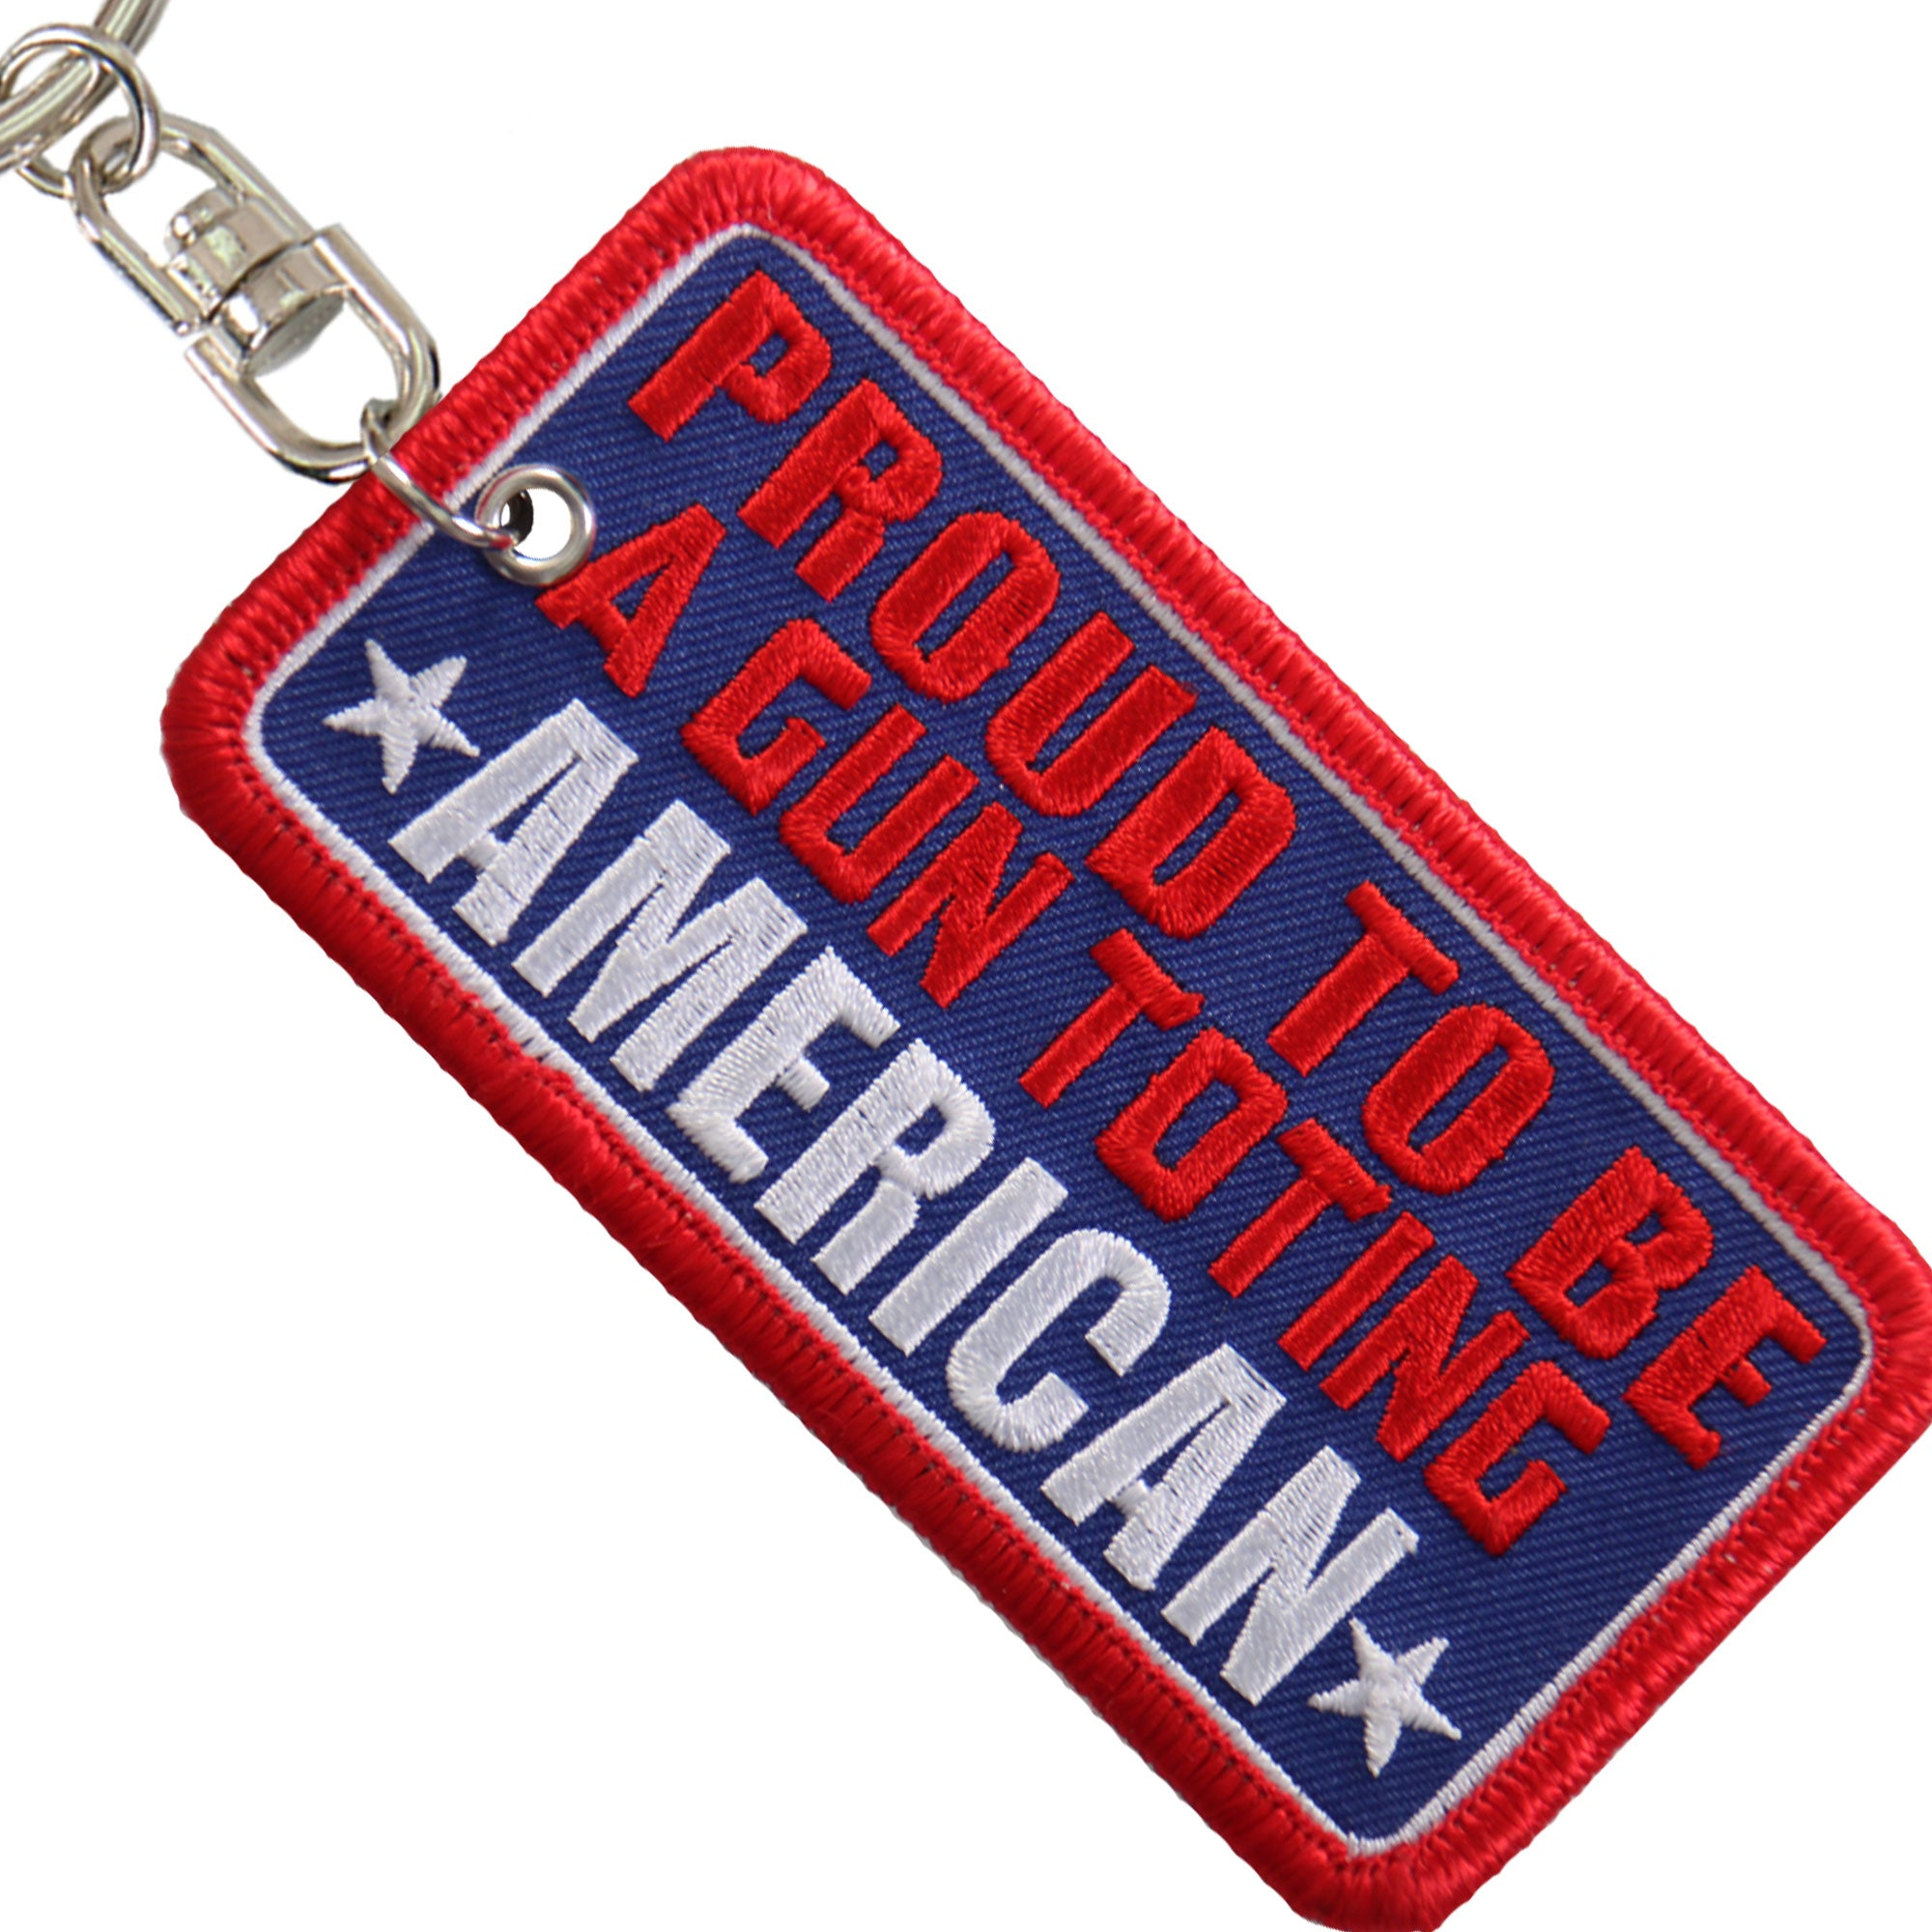 Hot Leathers Key Chain Patch Proud To Be a Gun Totting American